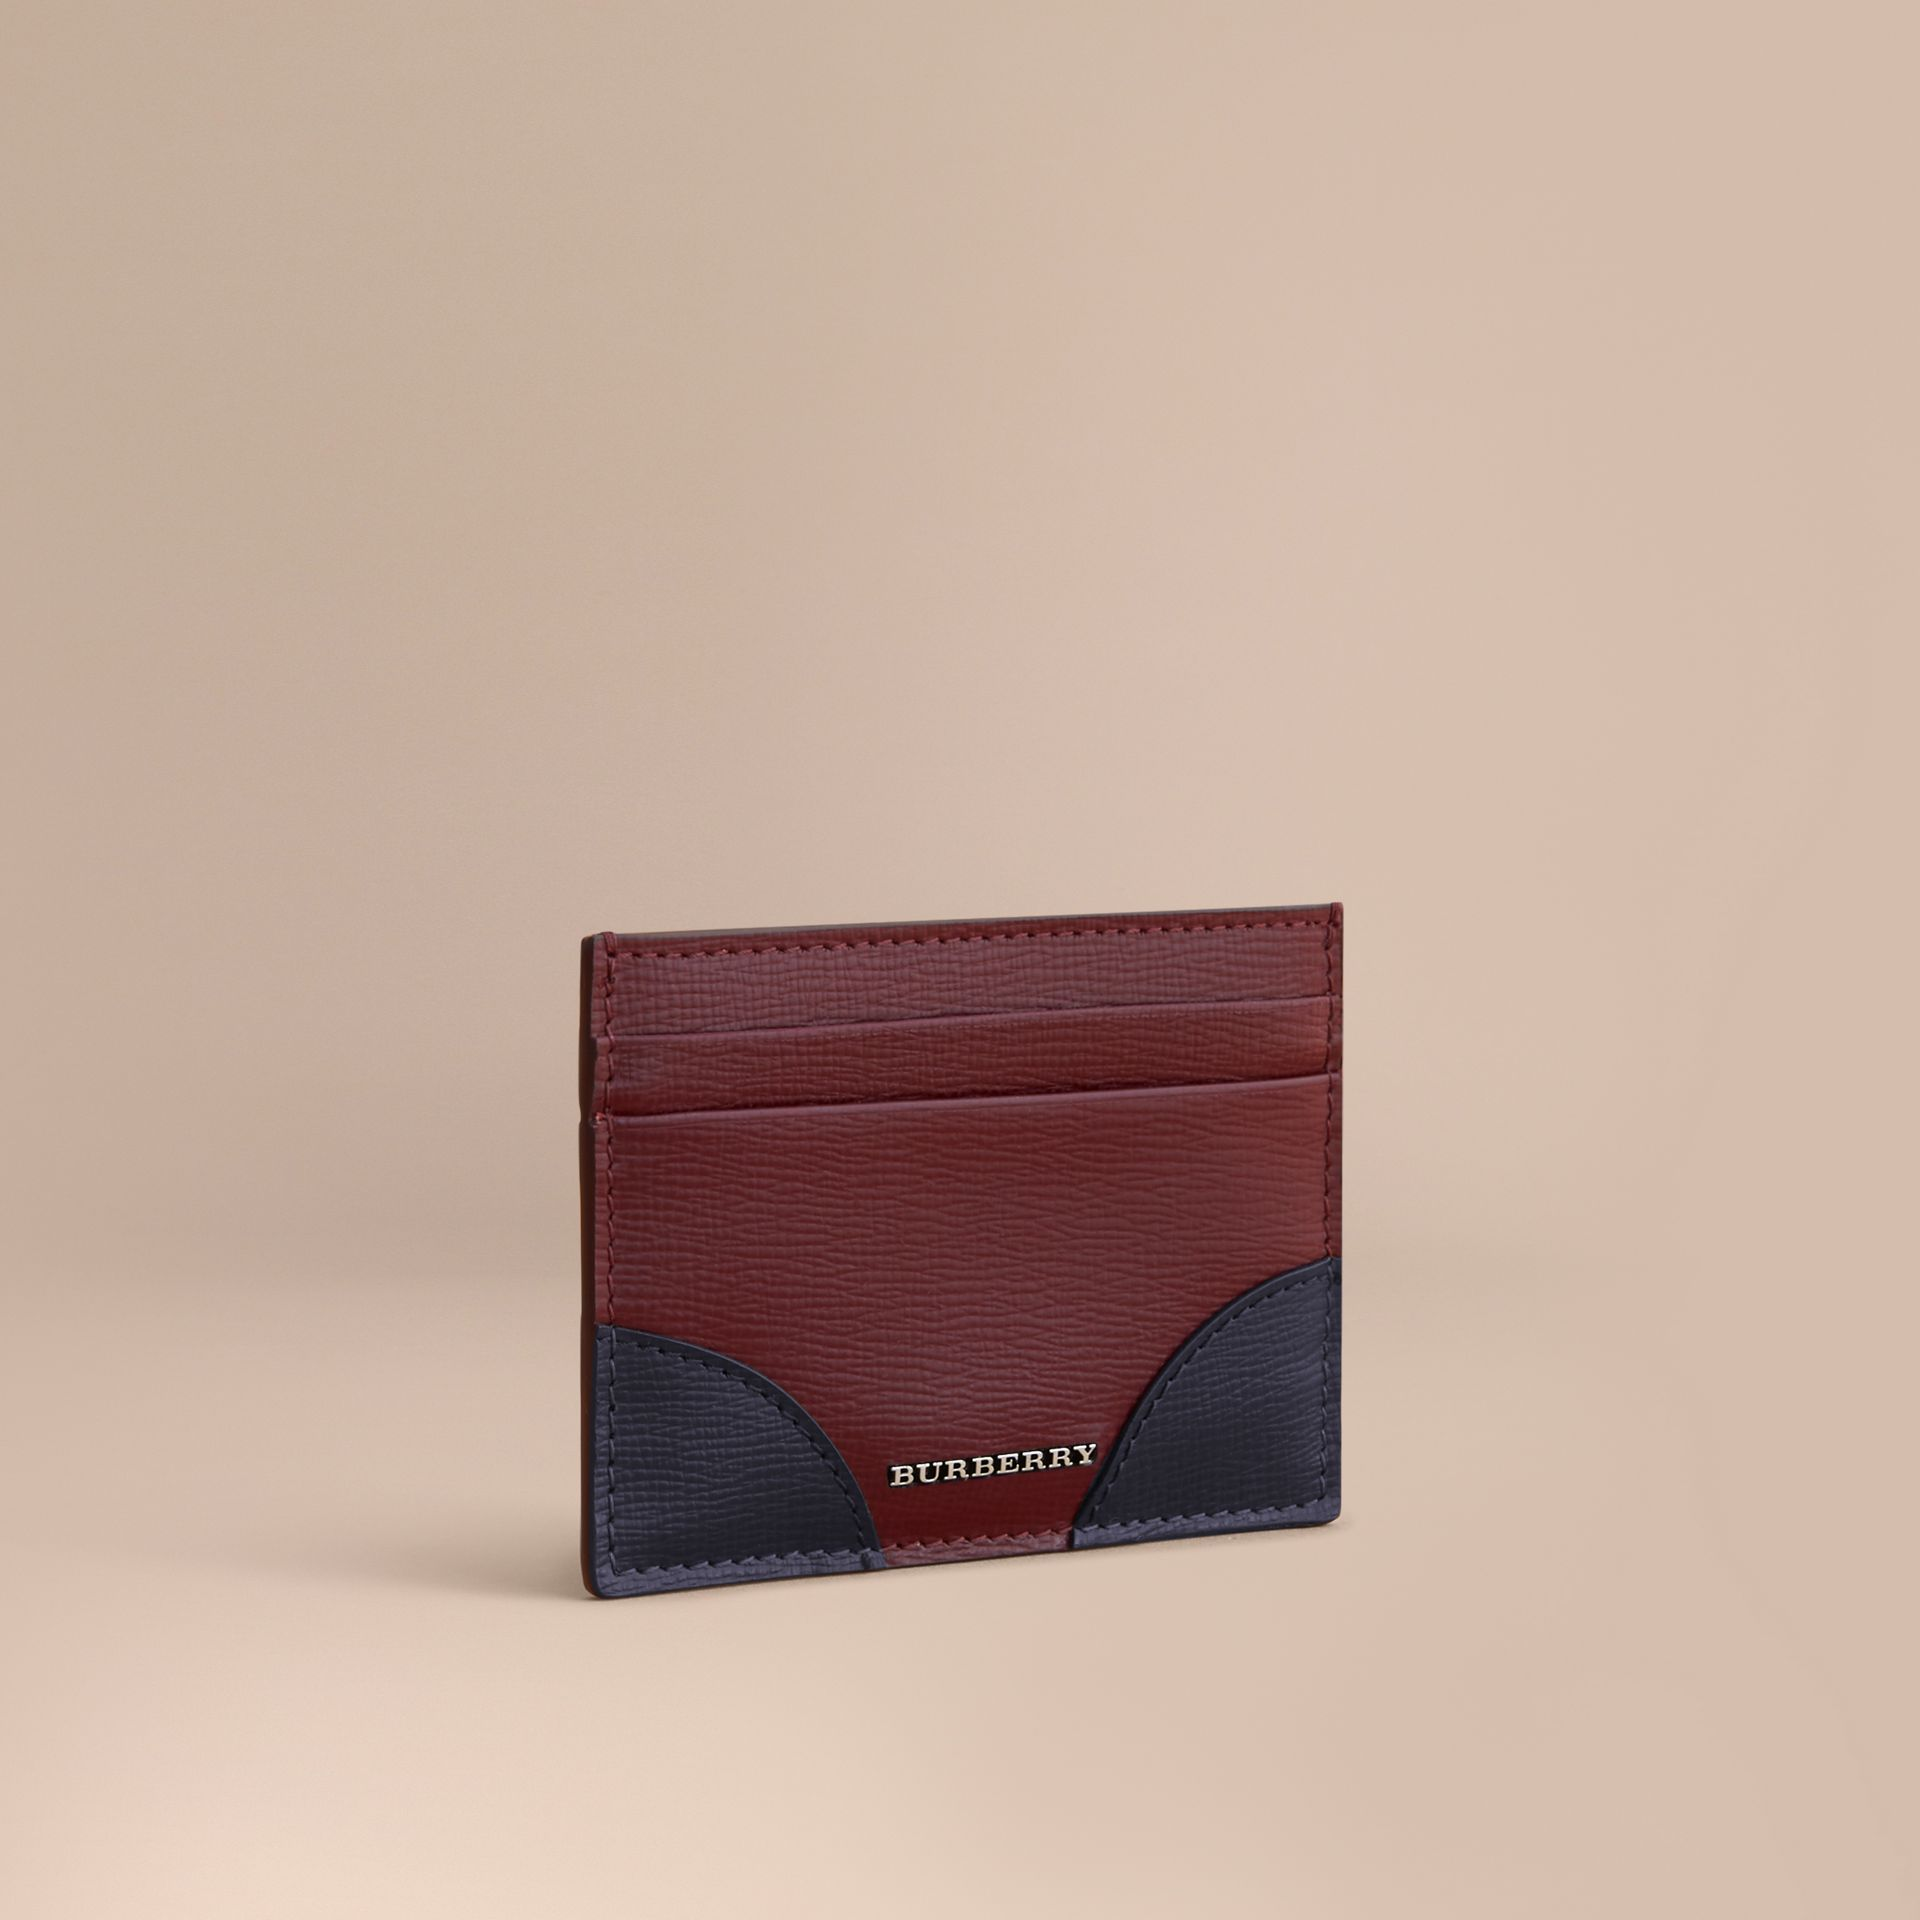 Contrast Corner London Leather Card Case in Burgundy Red - gallery image 1